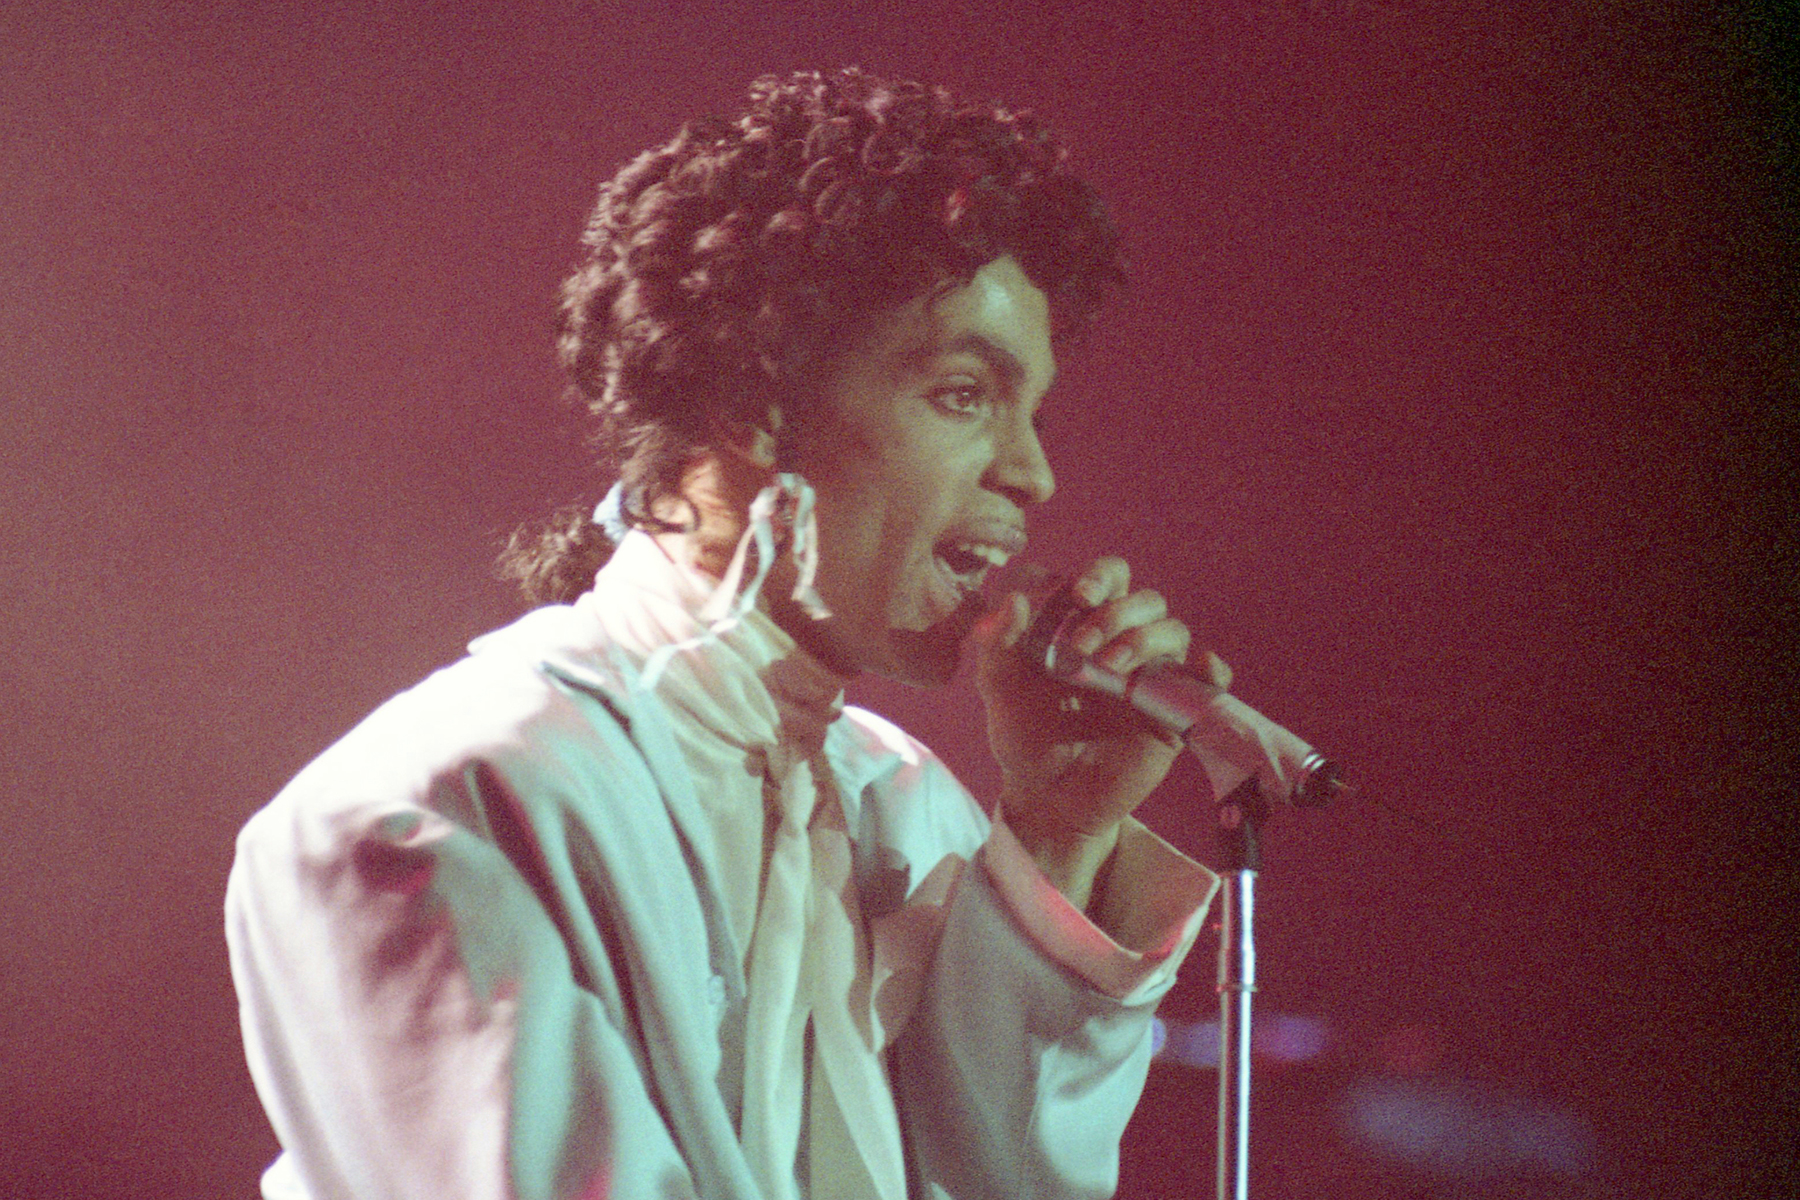 """FILE - In this May 14, 1987 file photo, American singer Prince performs during his Sign of the Times Tour in West Berlin, Germany. A rare Prince music film, """"Sign O' the Times,"""" will air on Showtime beginning Sept. 16. (AP Photo/Andreas Schoelzel, File)"""